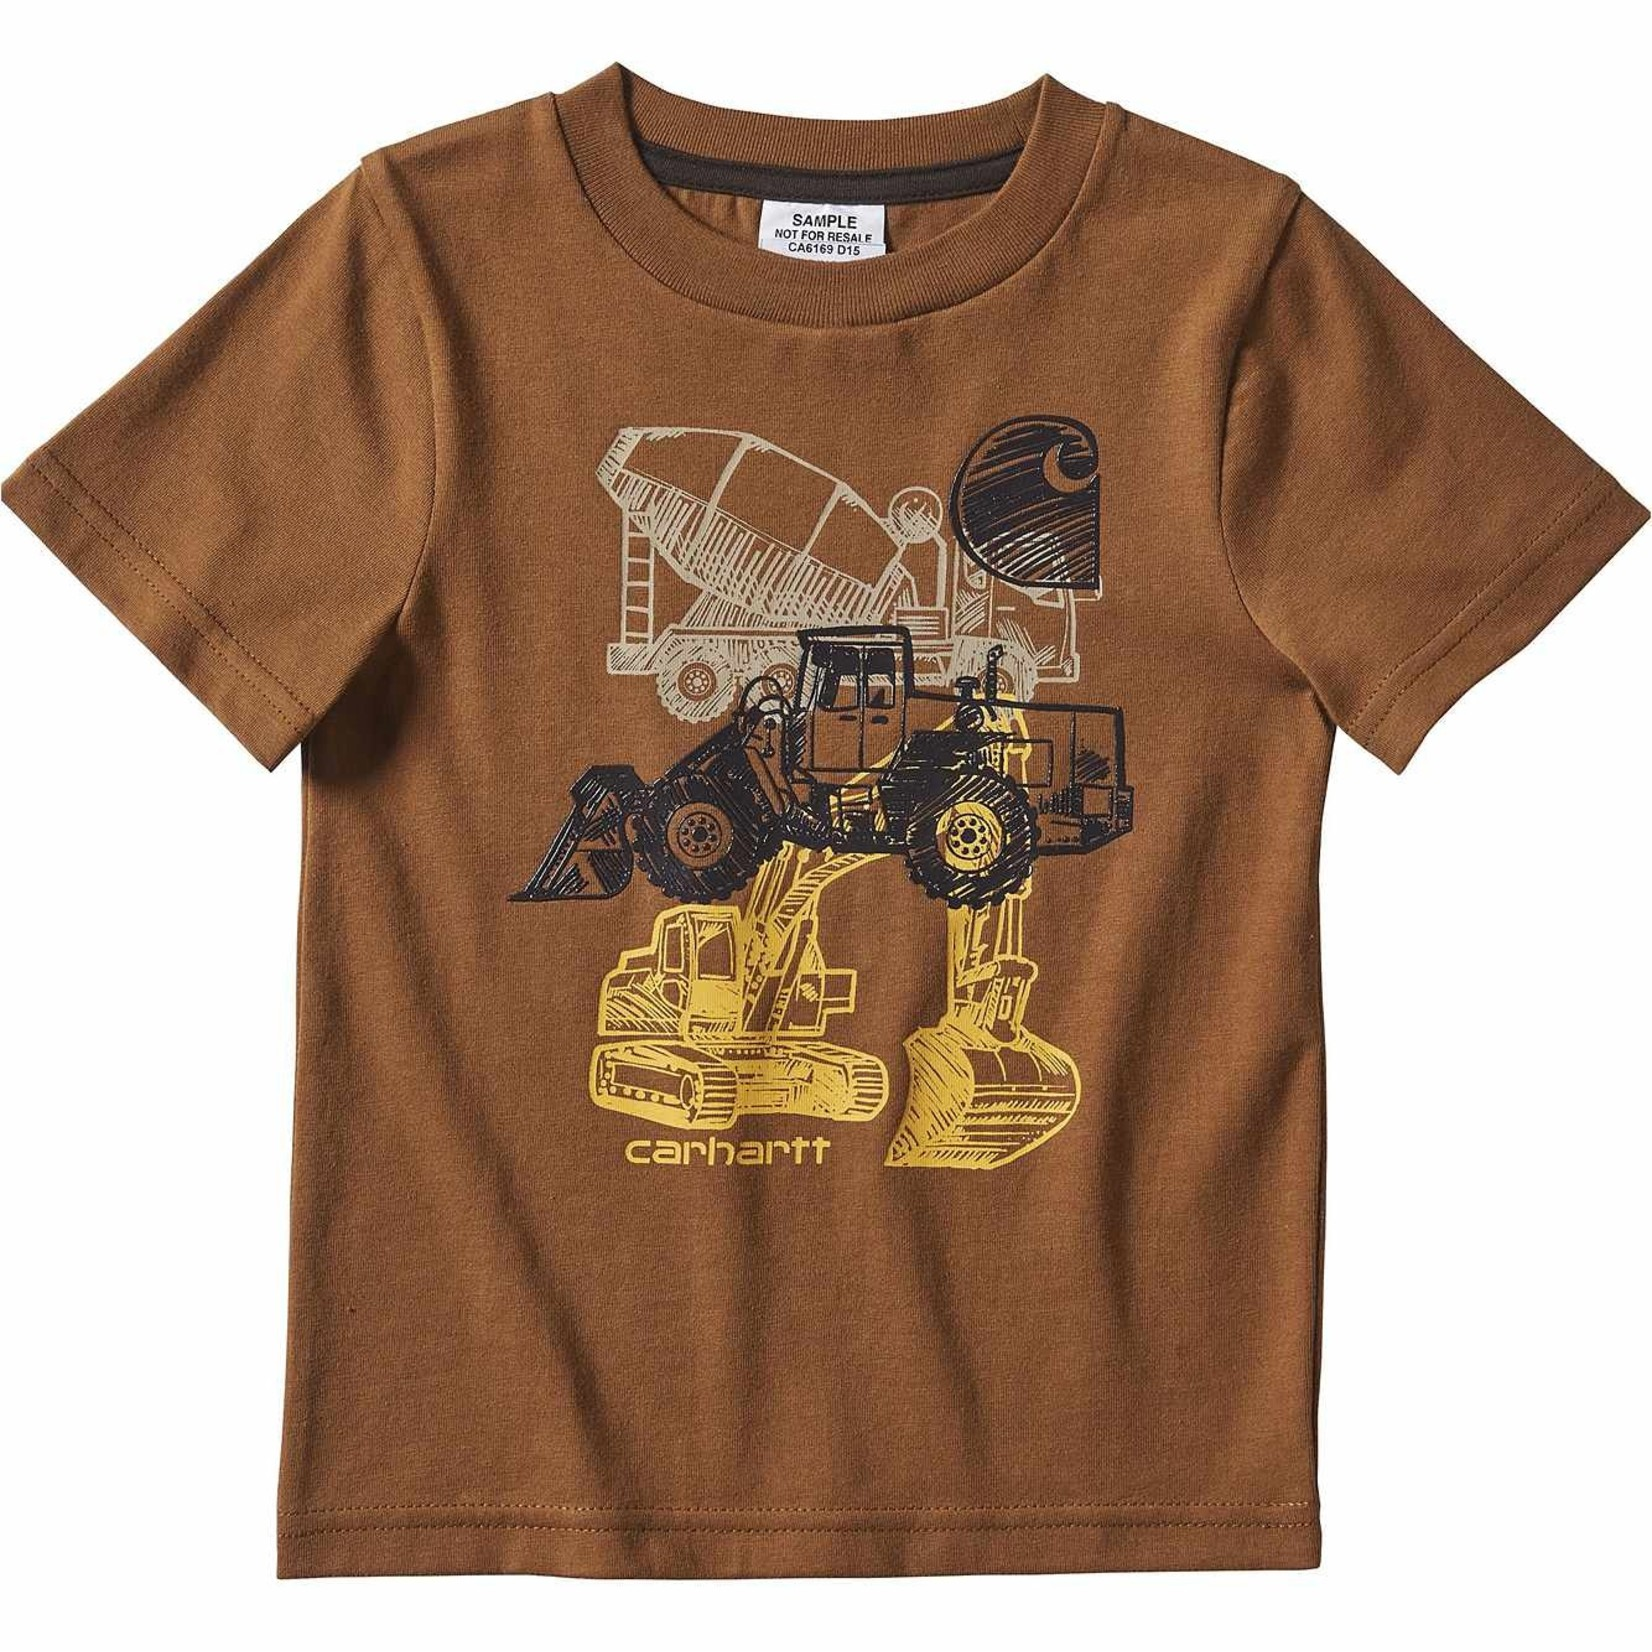 Carhartt Carhartt Kids CA6169 Heavy Equipment Boys Tee